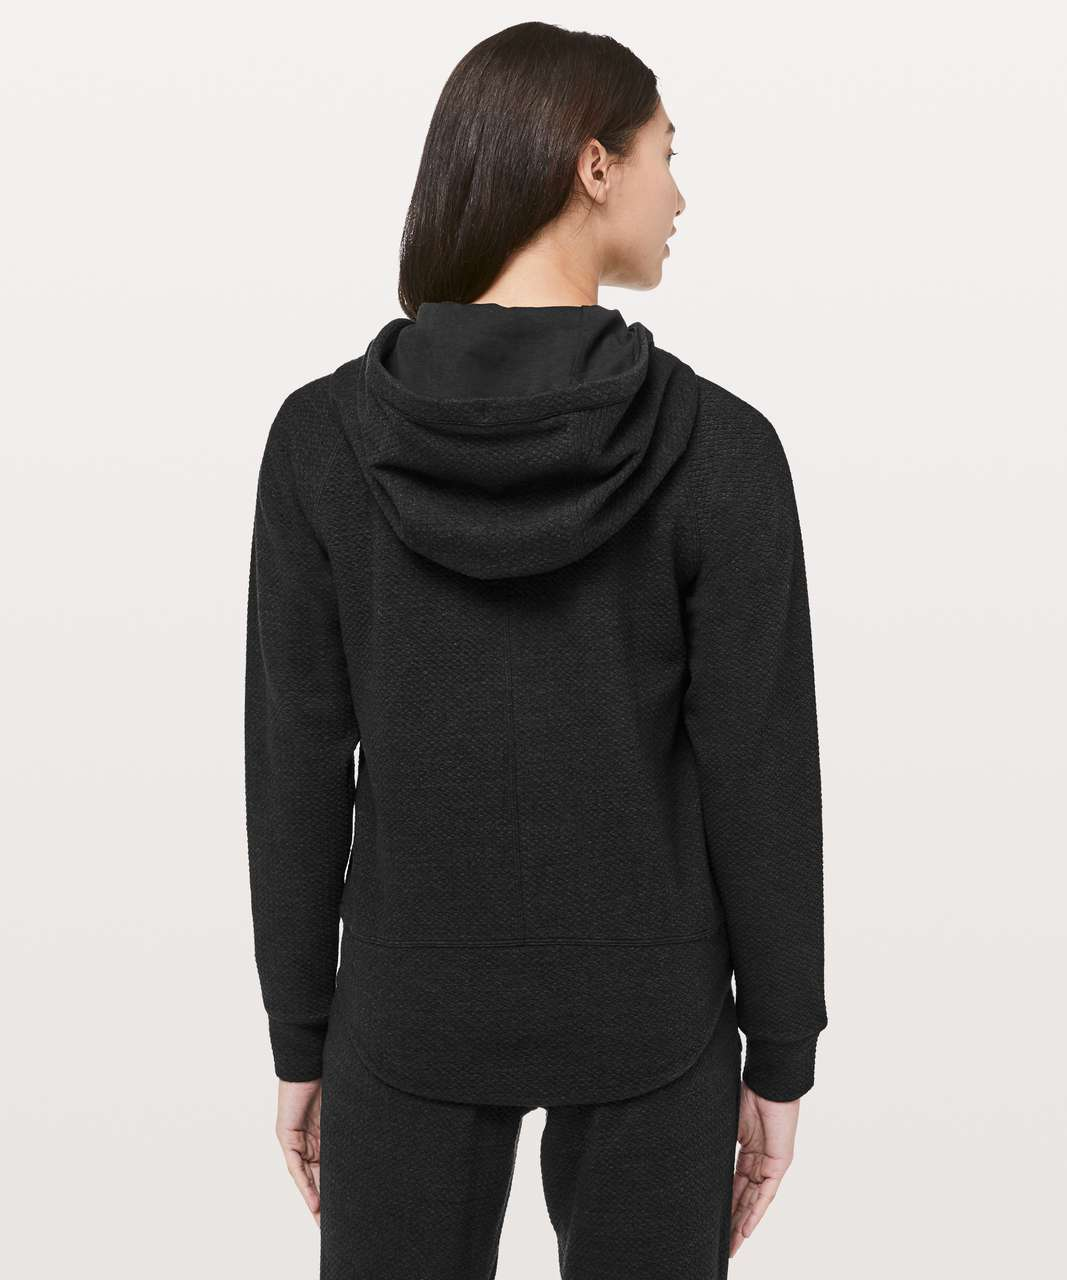 Lululemon Catch A Moment Zip Hoodie - Heathered Core Black